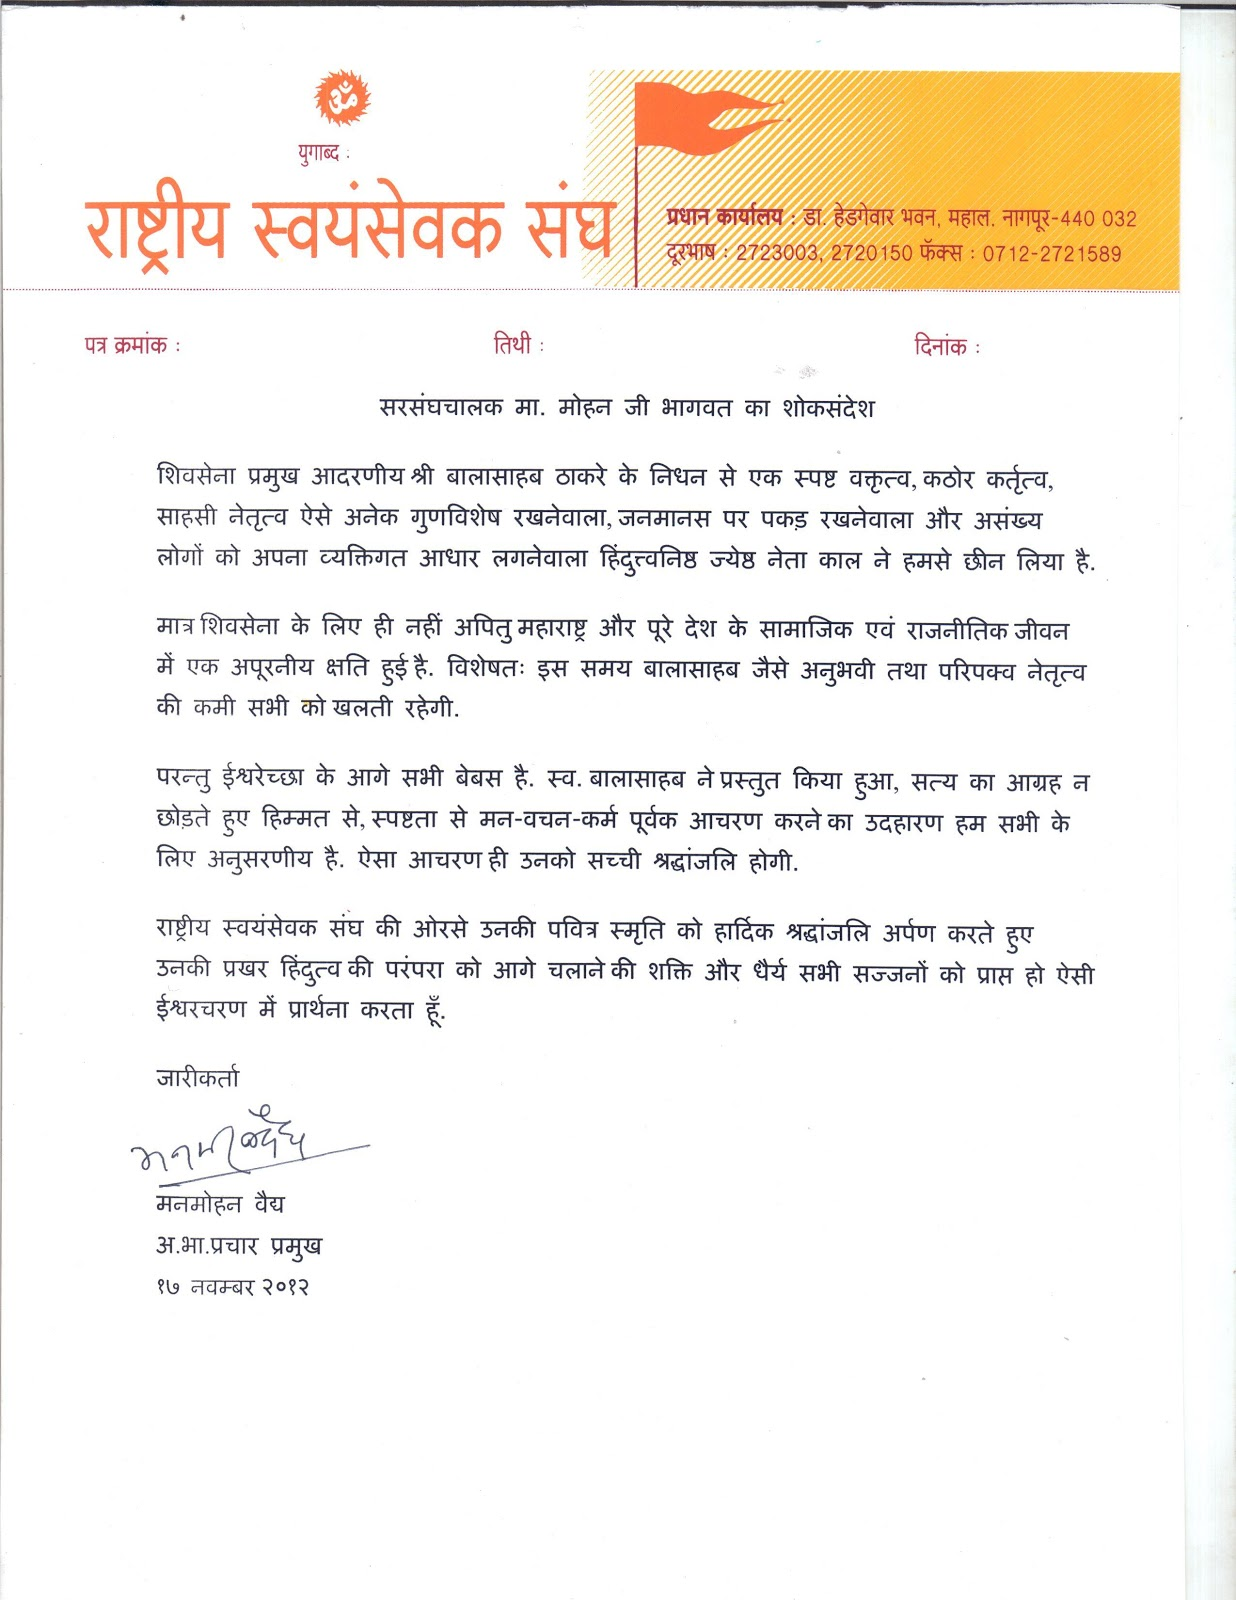 RSS Chief condoles the demise of Bala Saheb Thackeray